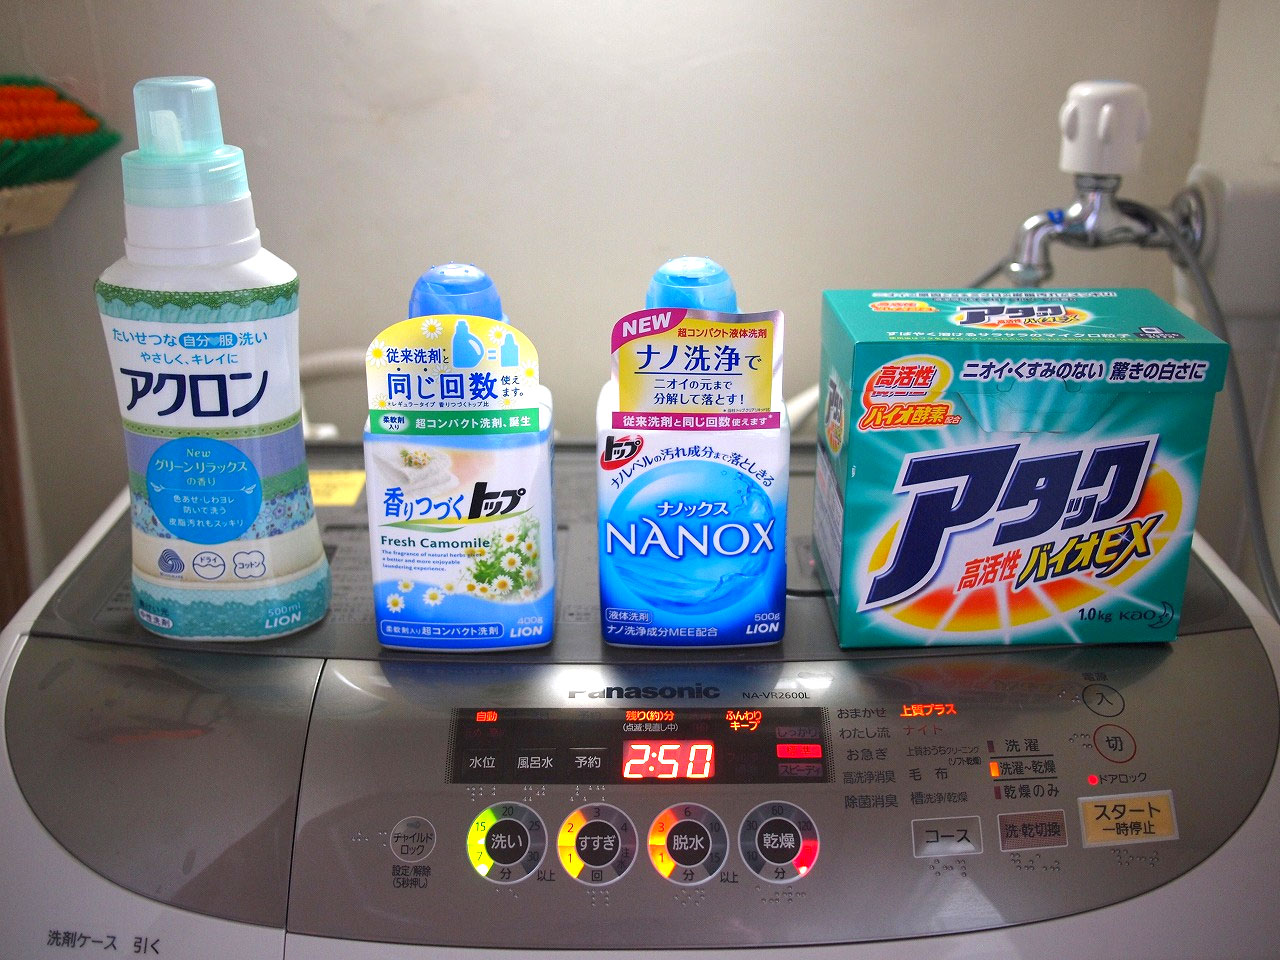 A Concise Guide To Japanese Laundry Products